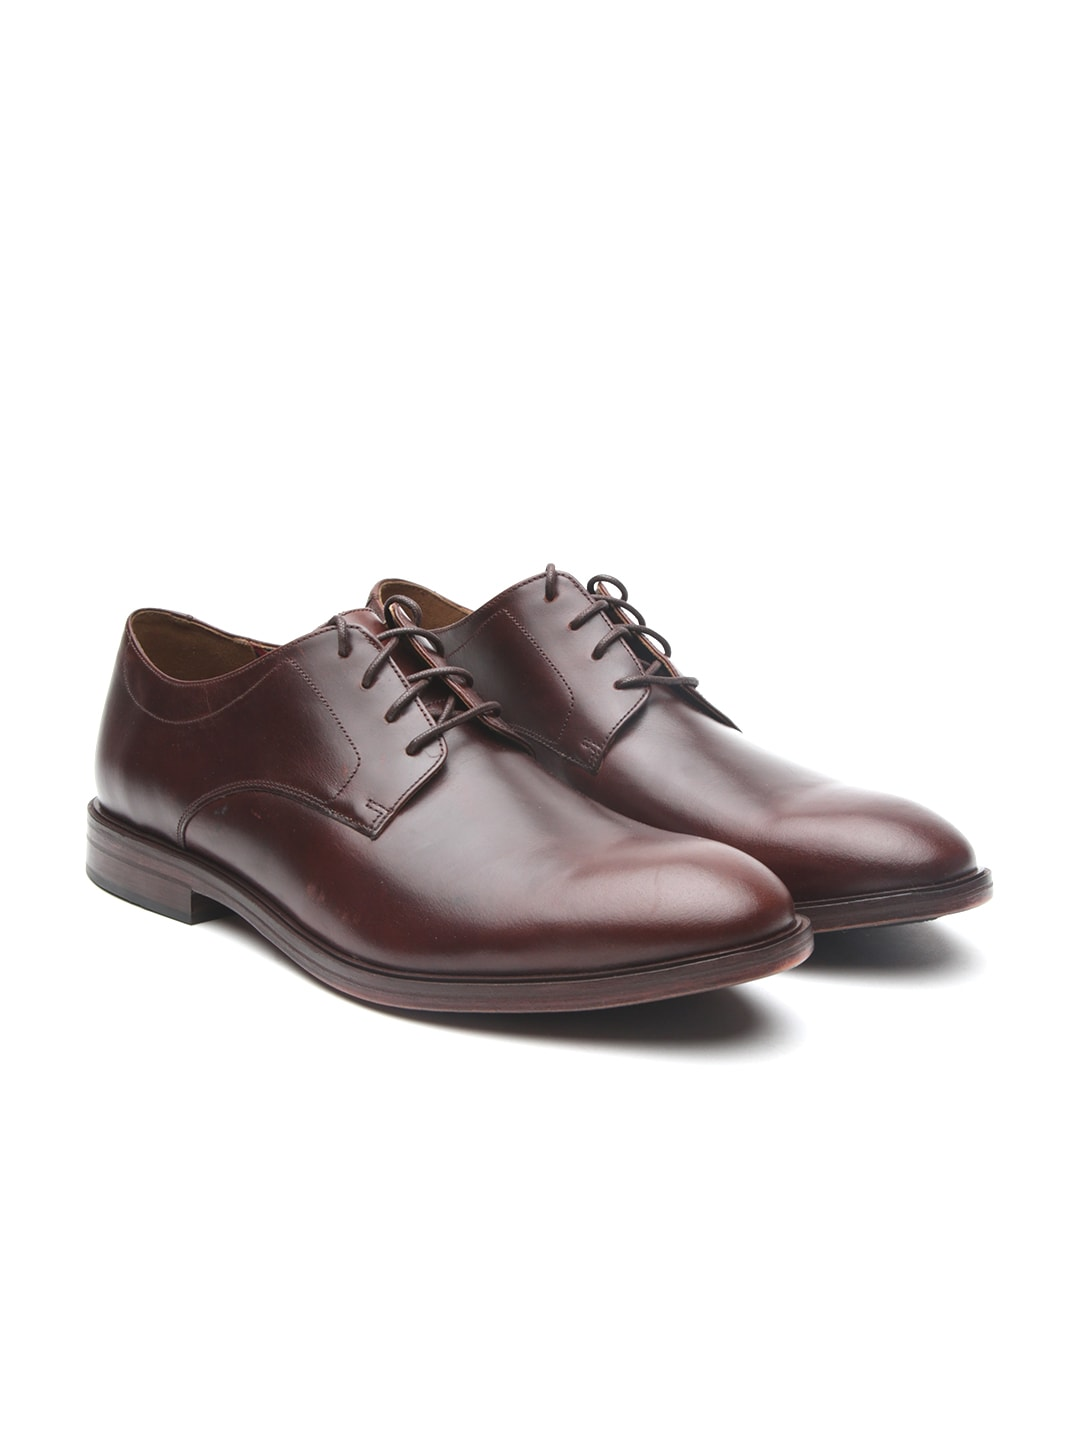 f450498187a Clarks Men Leather Brown Formal Shoes - Buy Clarks Men Leather Brown Formal  Shoes online in India